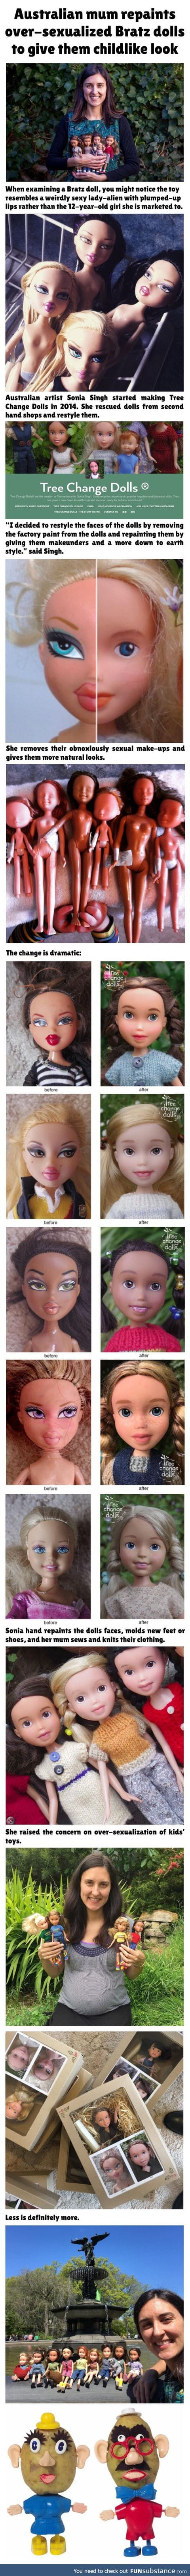 Amazing artist changes sexualised dolls